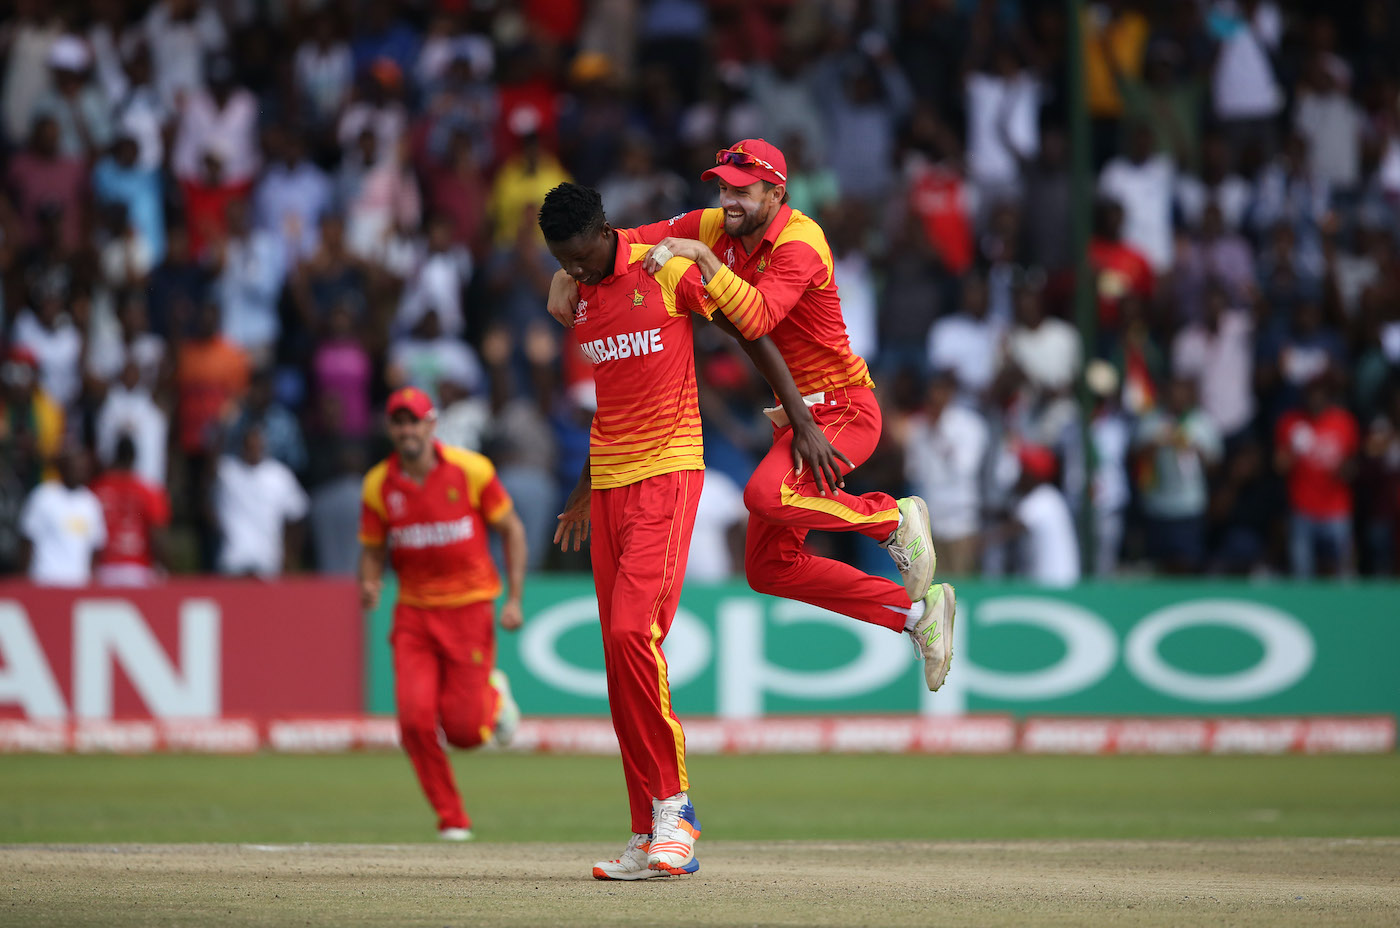 Fans packed the stadiums for the qualifiers to see Muzarabani, and Zimbabwe, almost make it to the 2019 World Cup proper